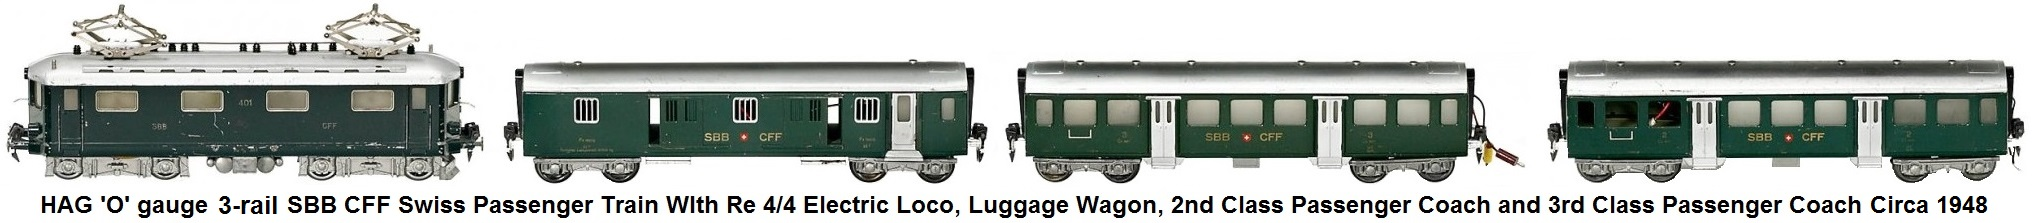 Hag 'O' gauge SBB CFF Swiss Passenger train with RE 4/4 loco, 3rd class passenger coach, 2nd class passenger coach luggage wagon